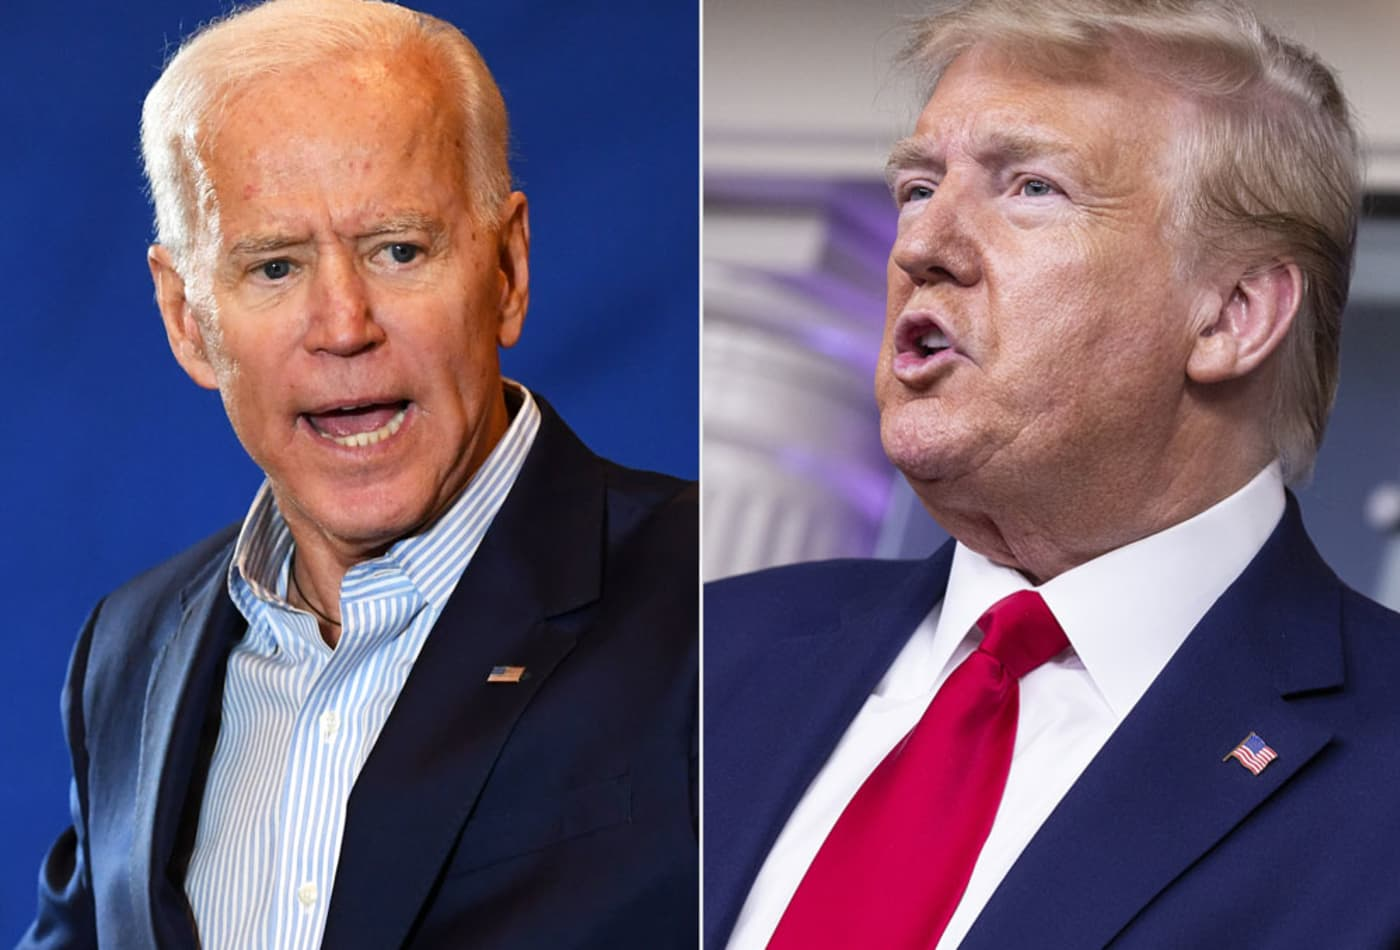 Biden vs. Trump: What their policies mean for your money - cover